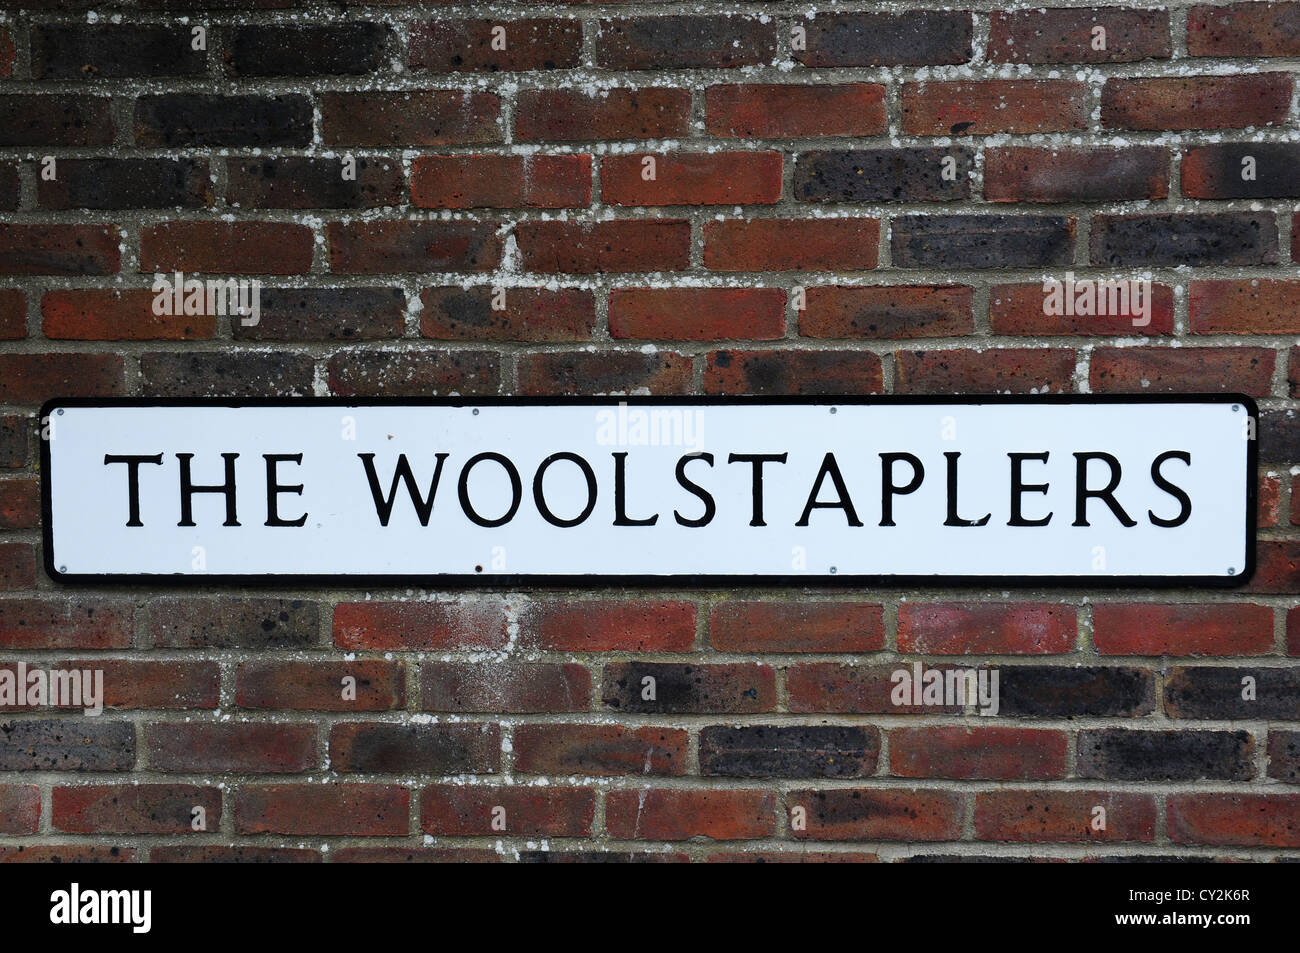 Sign in Chichester reminiscent of Chichester's status as a woolstaple town. - Stock Image